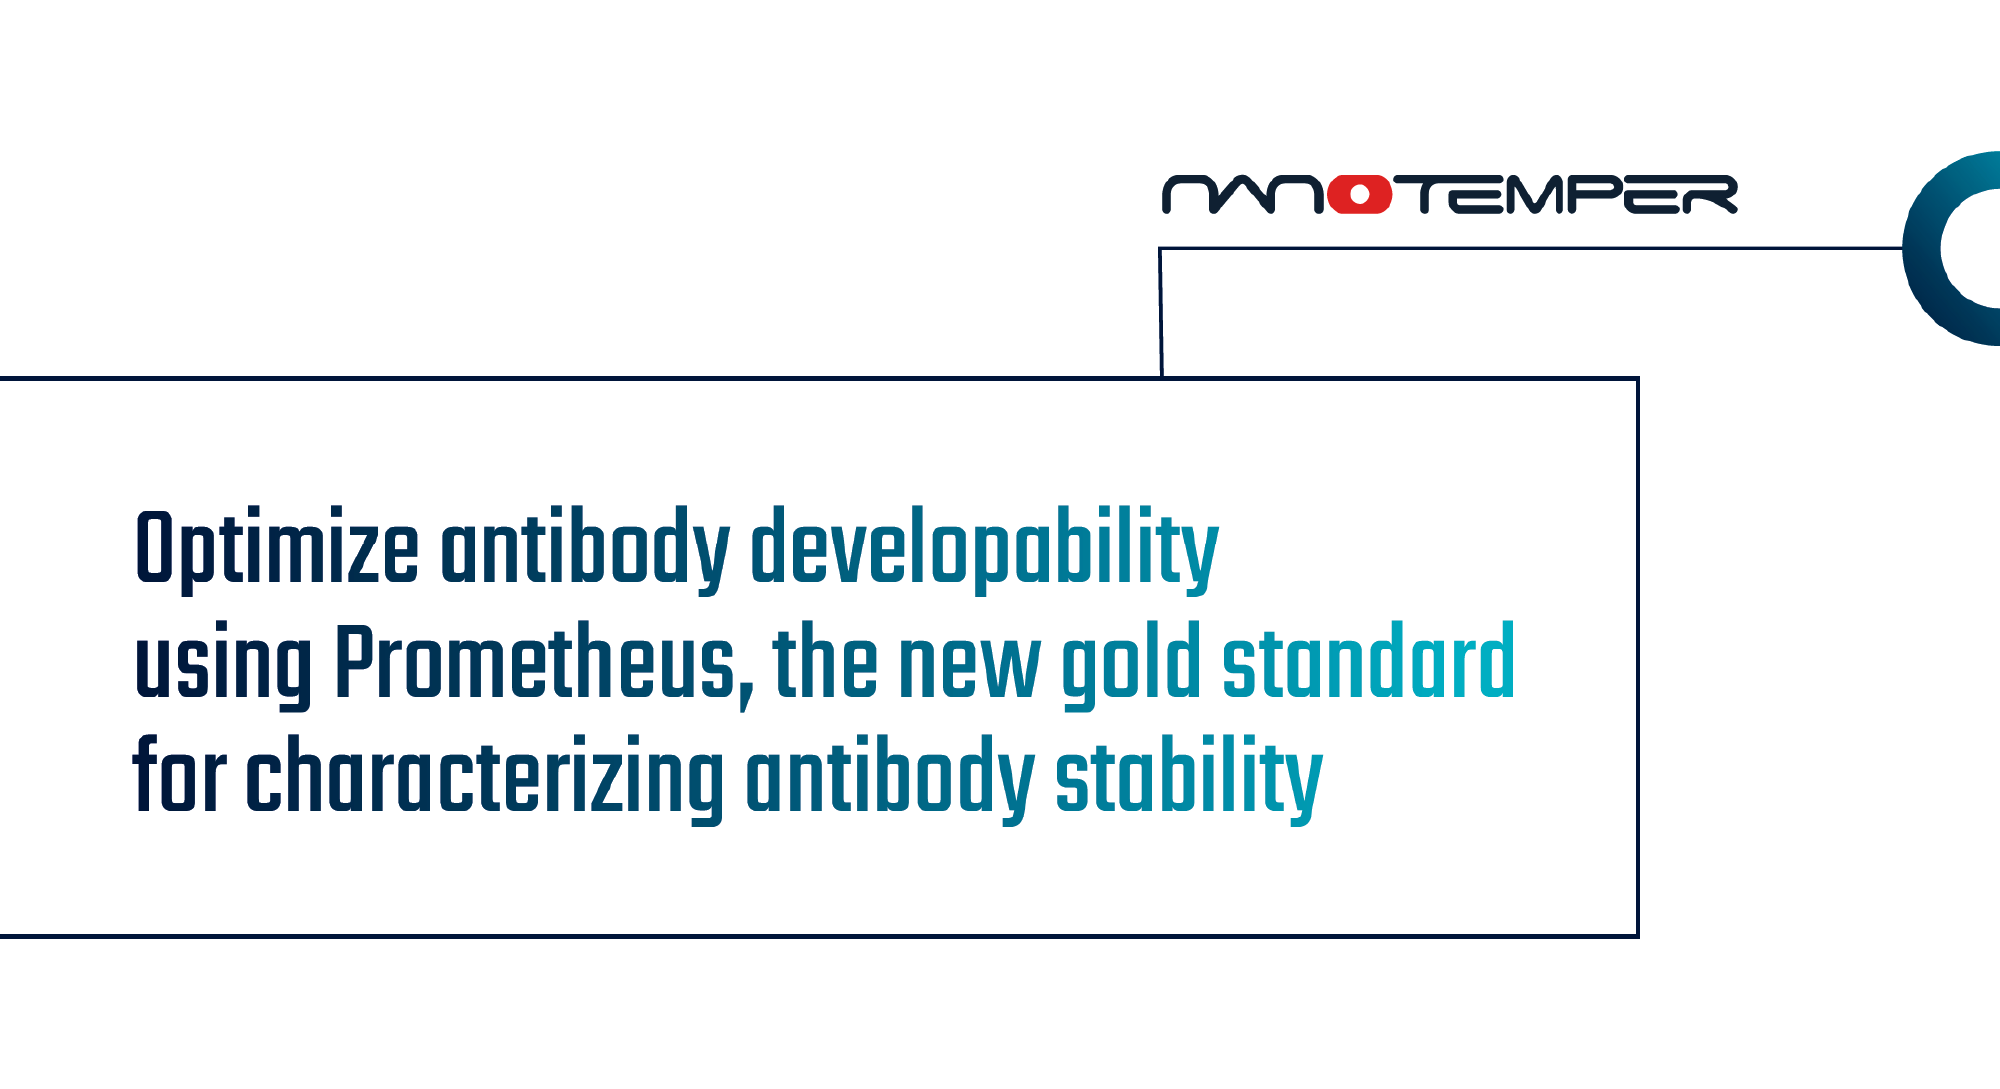 Optimize antibody developability using Prometheus, the new gold standard for characterizing antibody stability